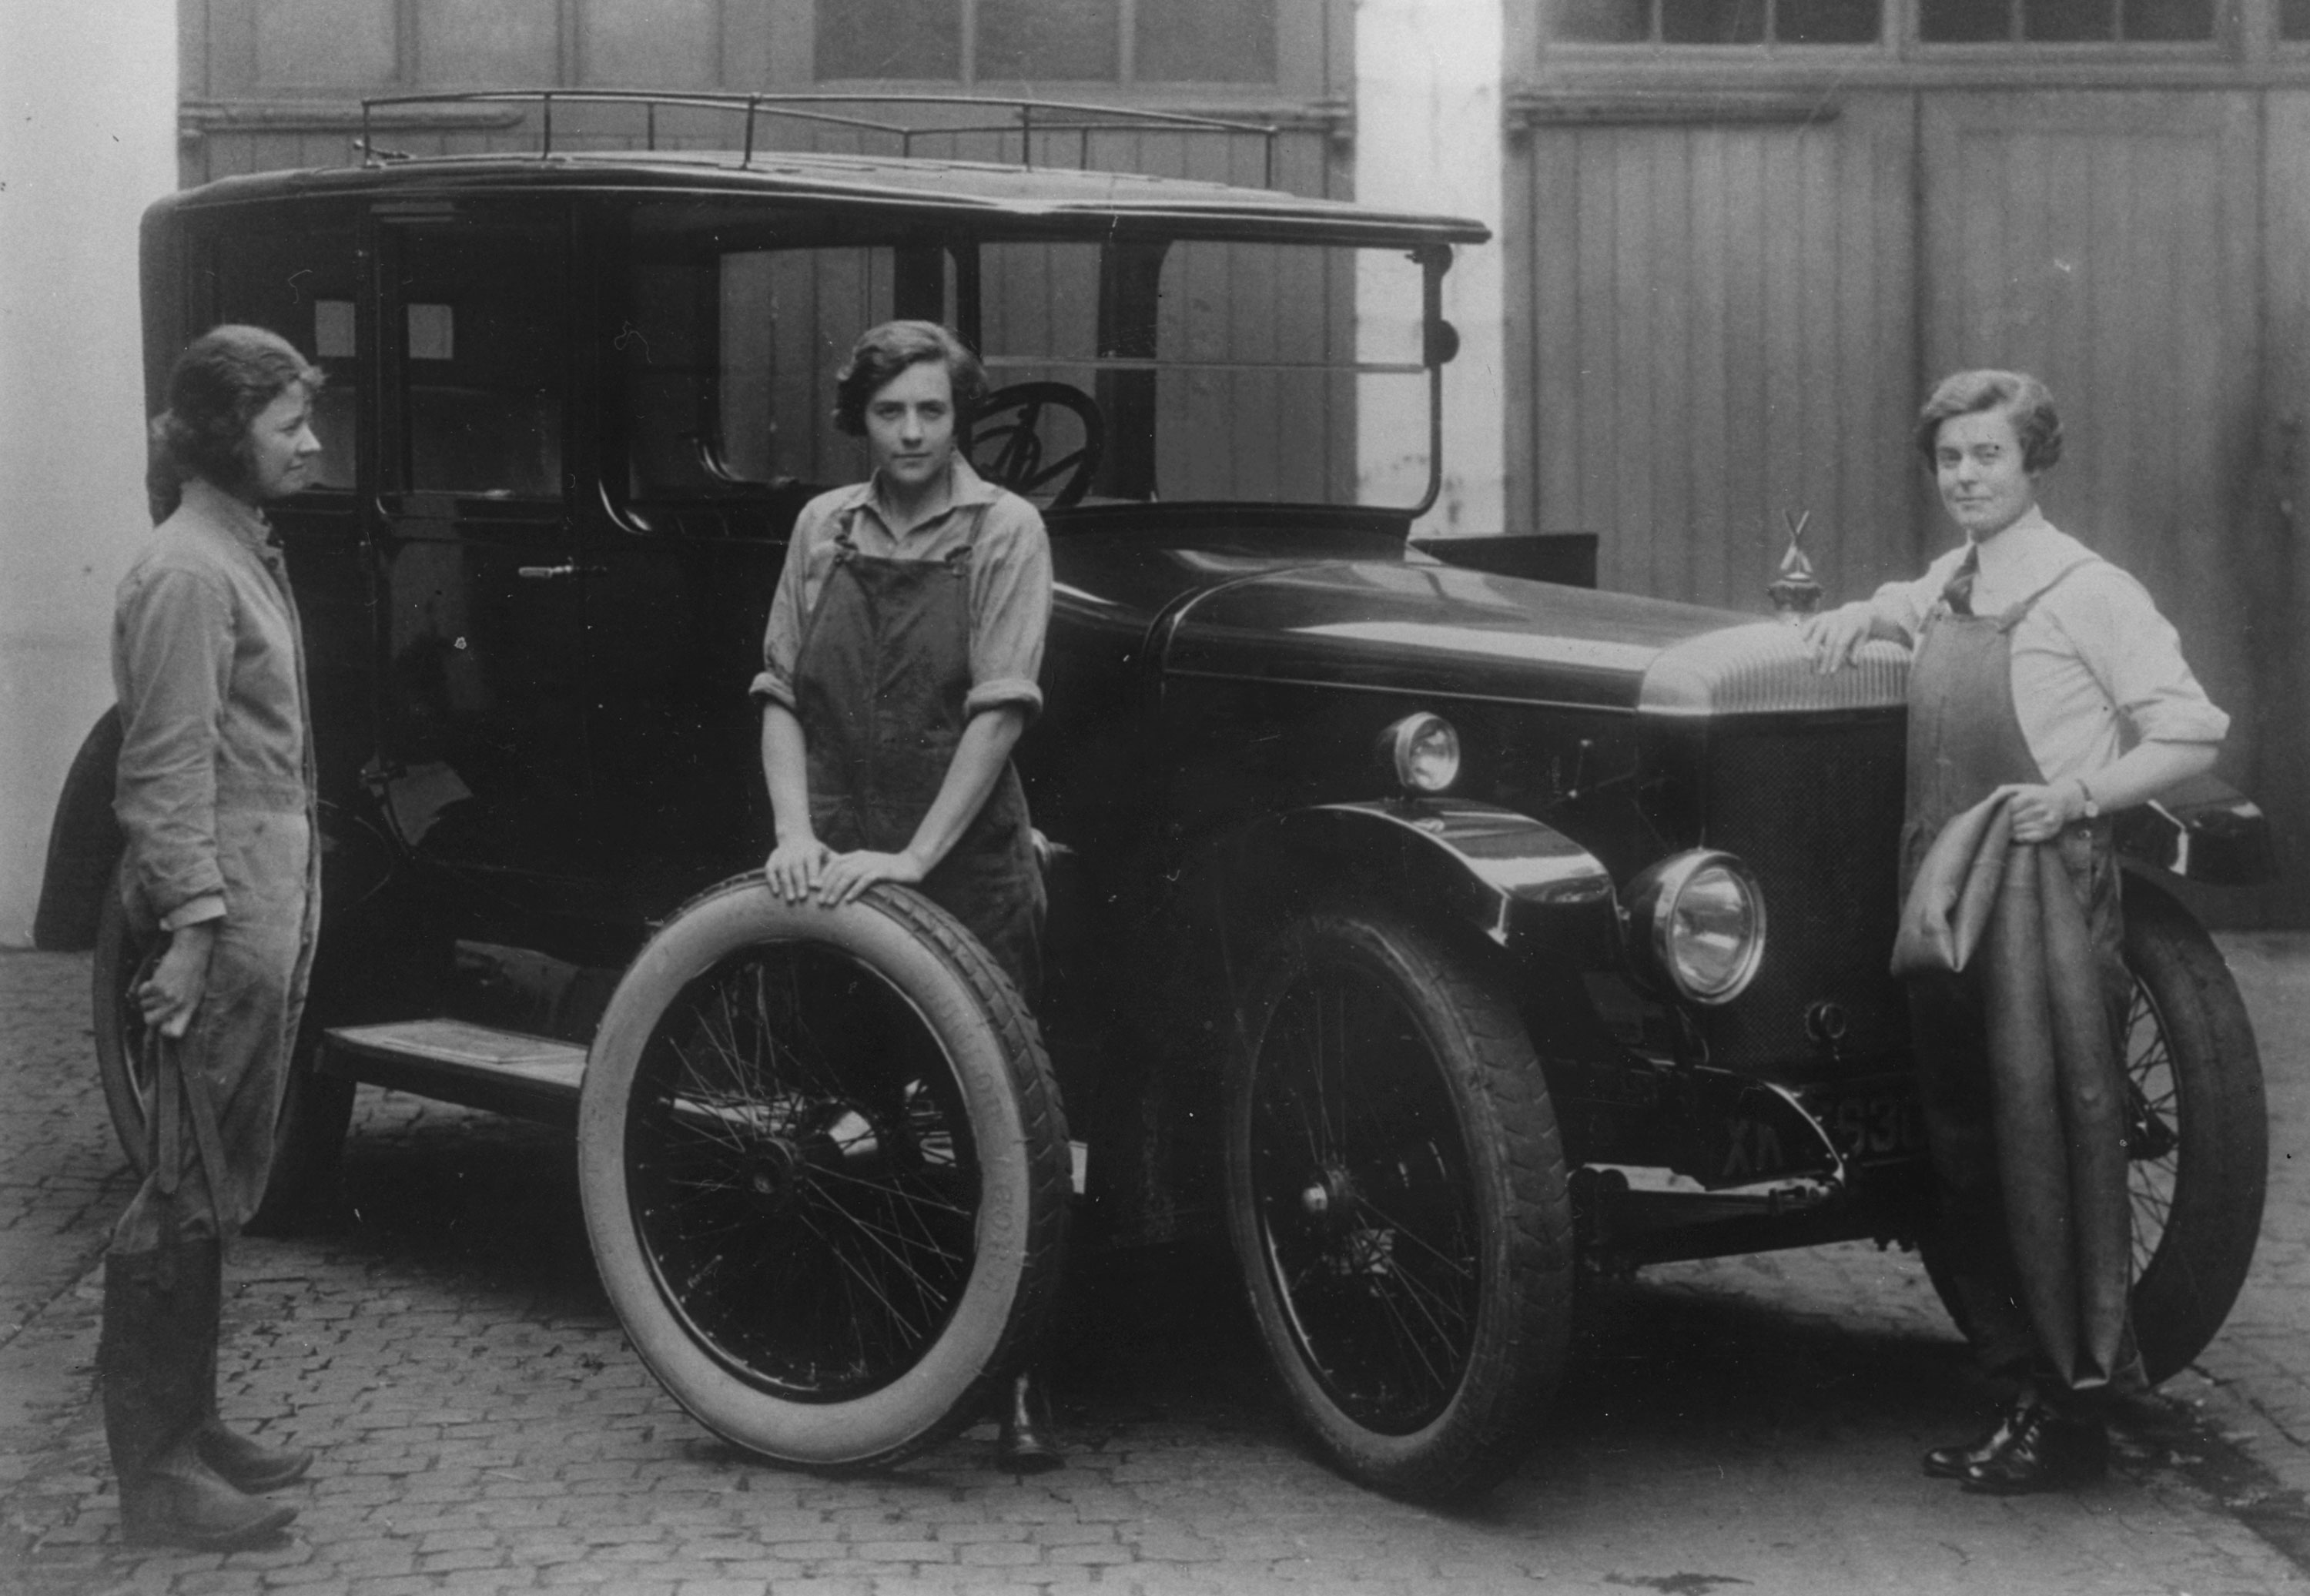 Daimler with women mechanics standing beside, 1914